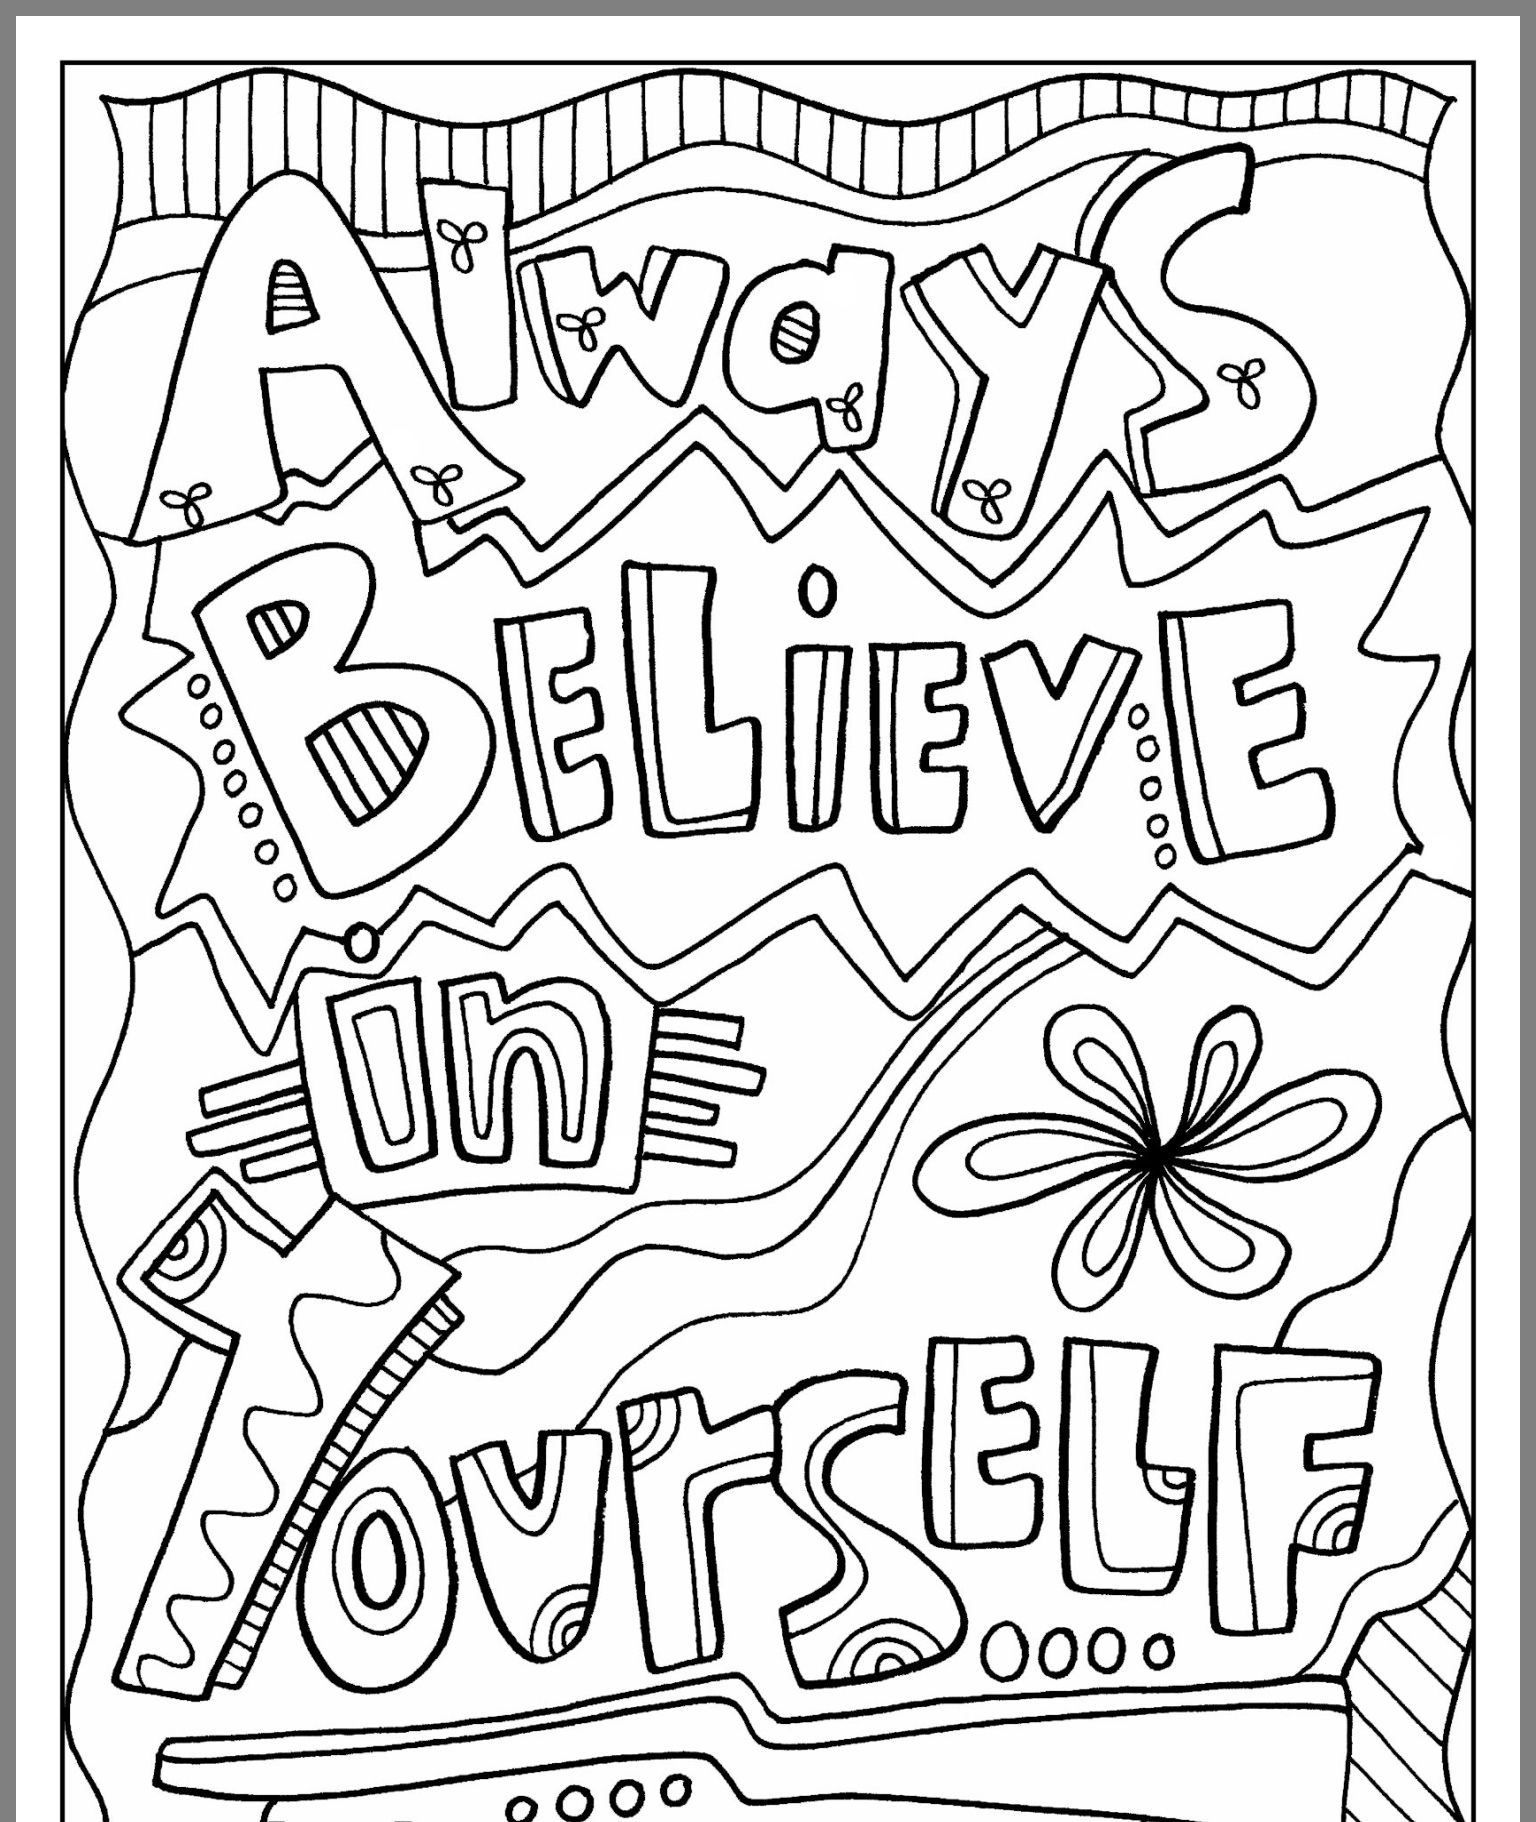 Pin by Lauren on Coloring pages Quote coloring pages